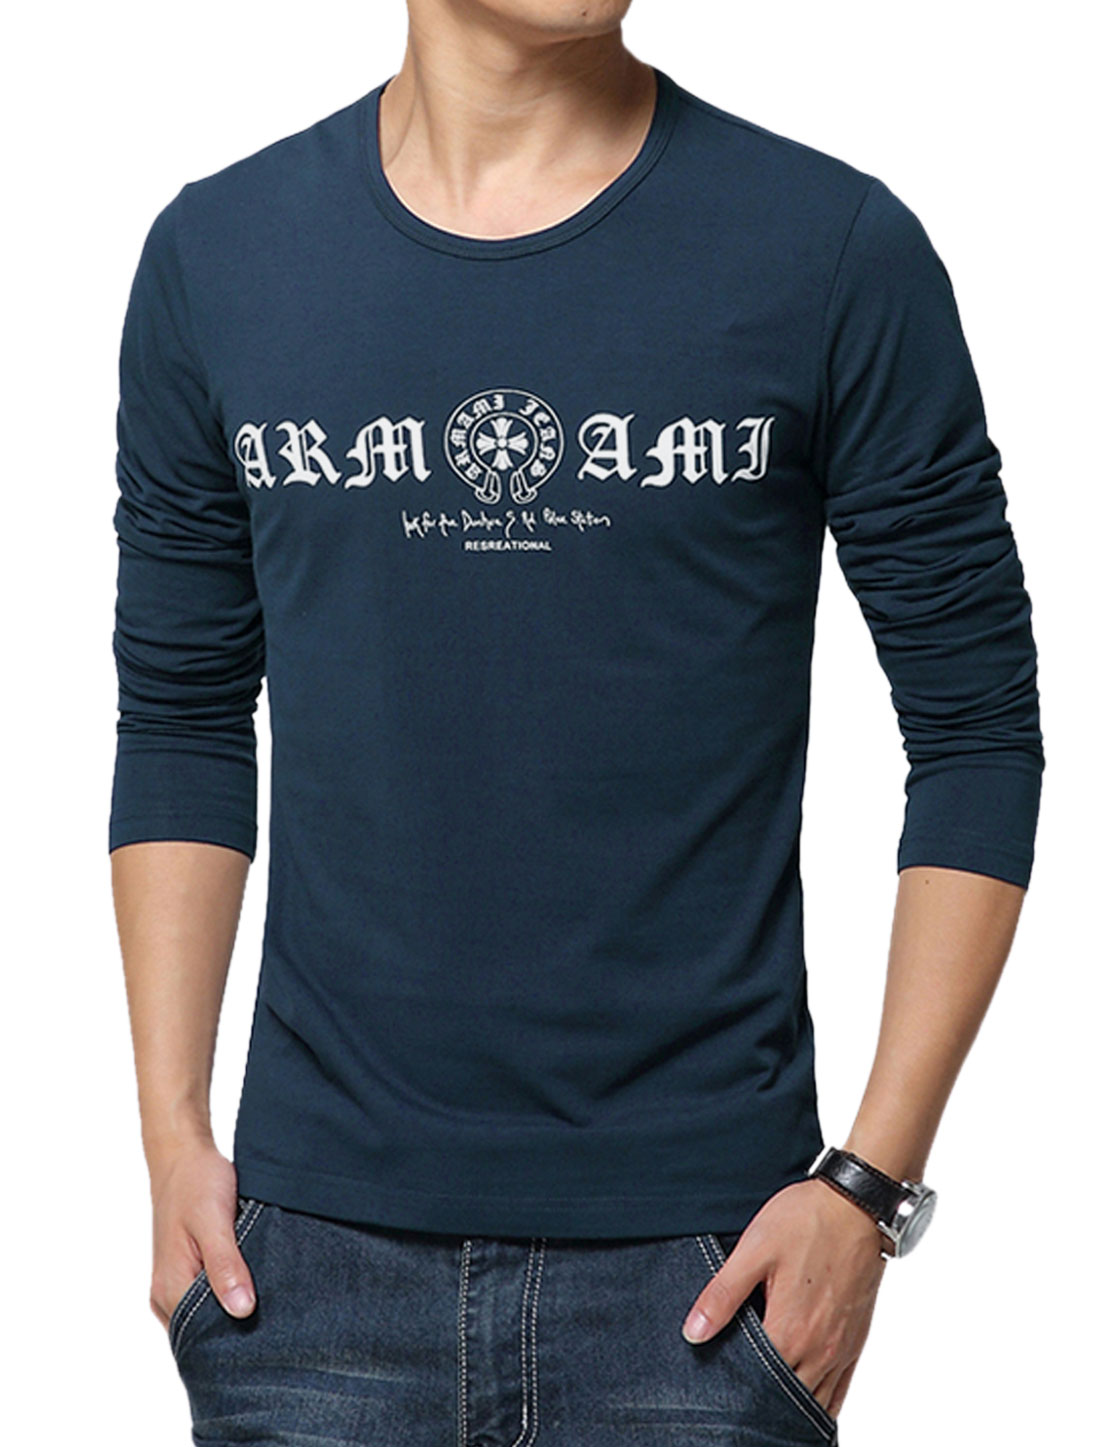 Man Letters Prints Round Neck Long Sleeves Slipover Leisure Tee Navy Blue M